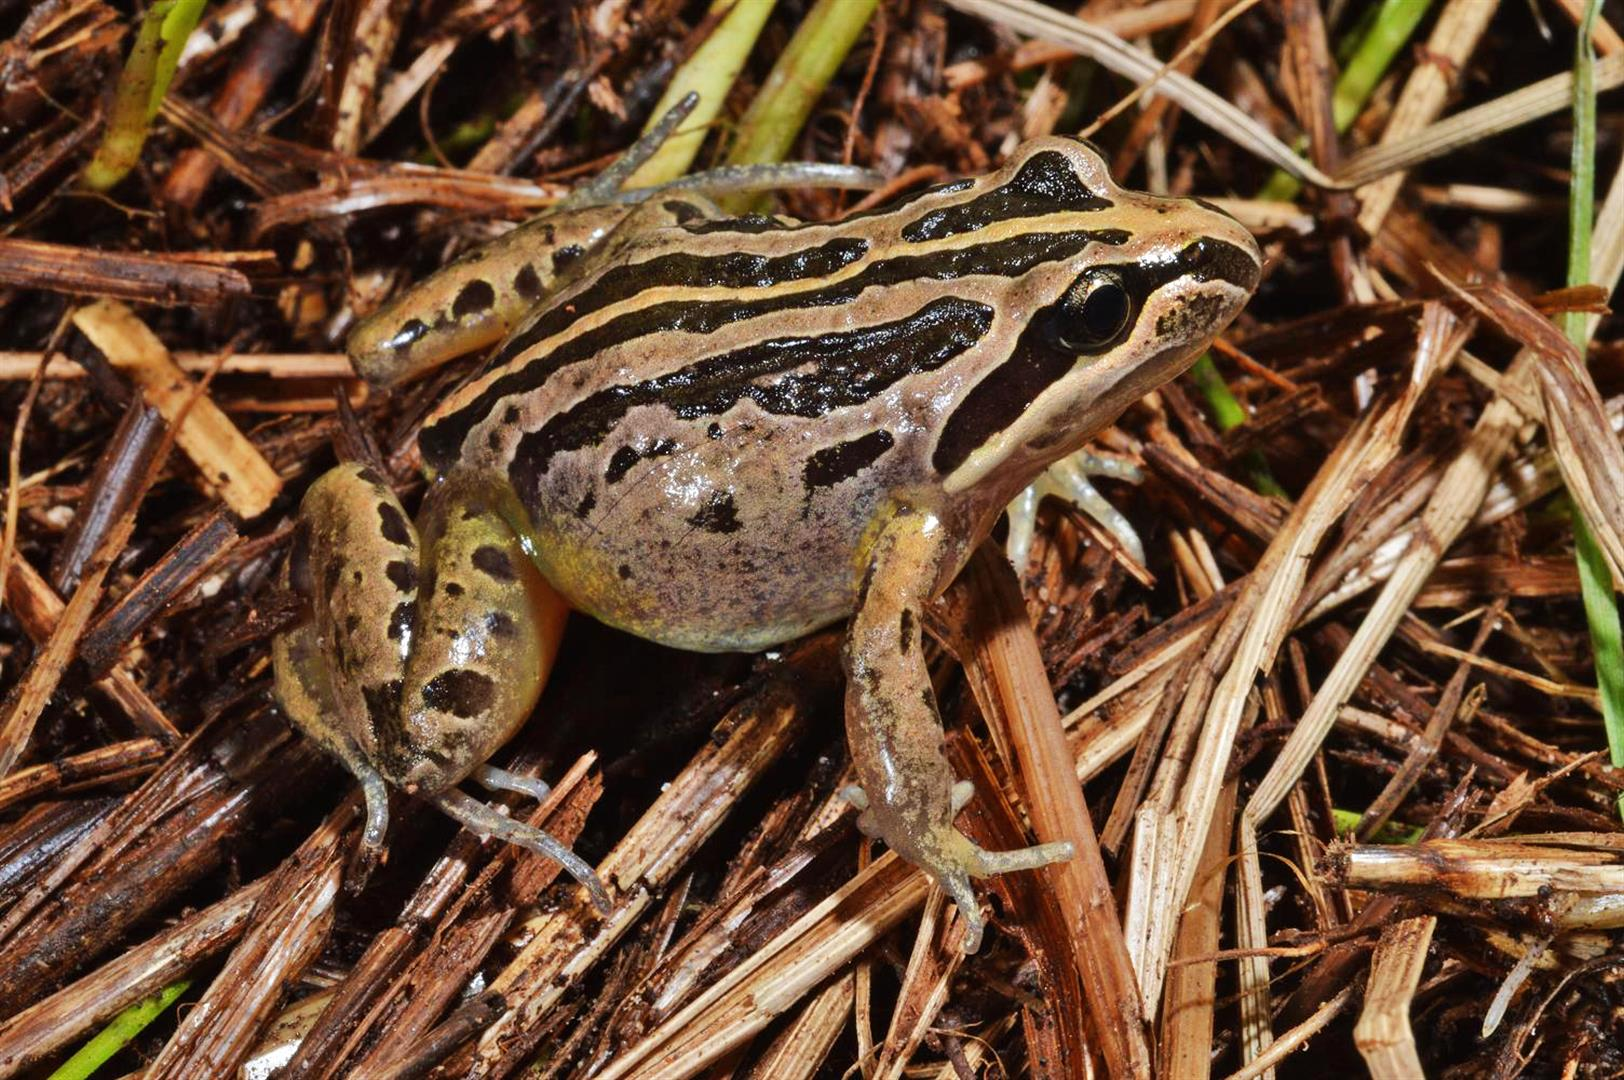 Striped Marsh Frog (Limnodynastes peroni), Healesville, Victoria.  Photograph courtesy and copyright Mike Swan.